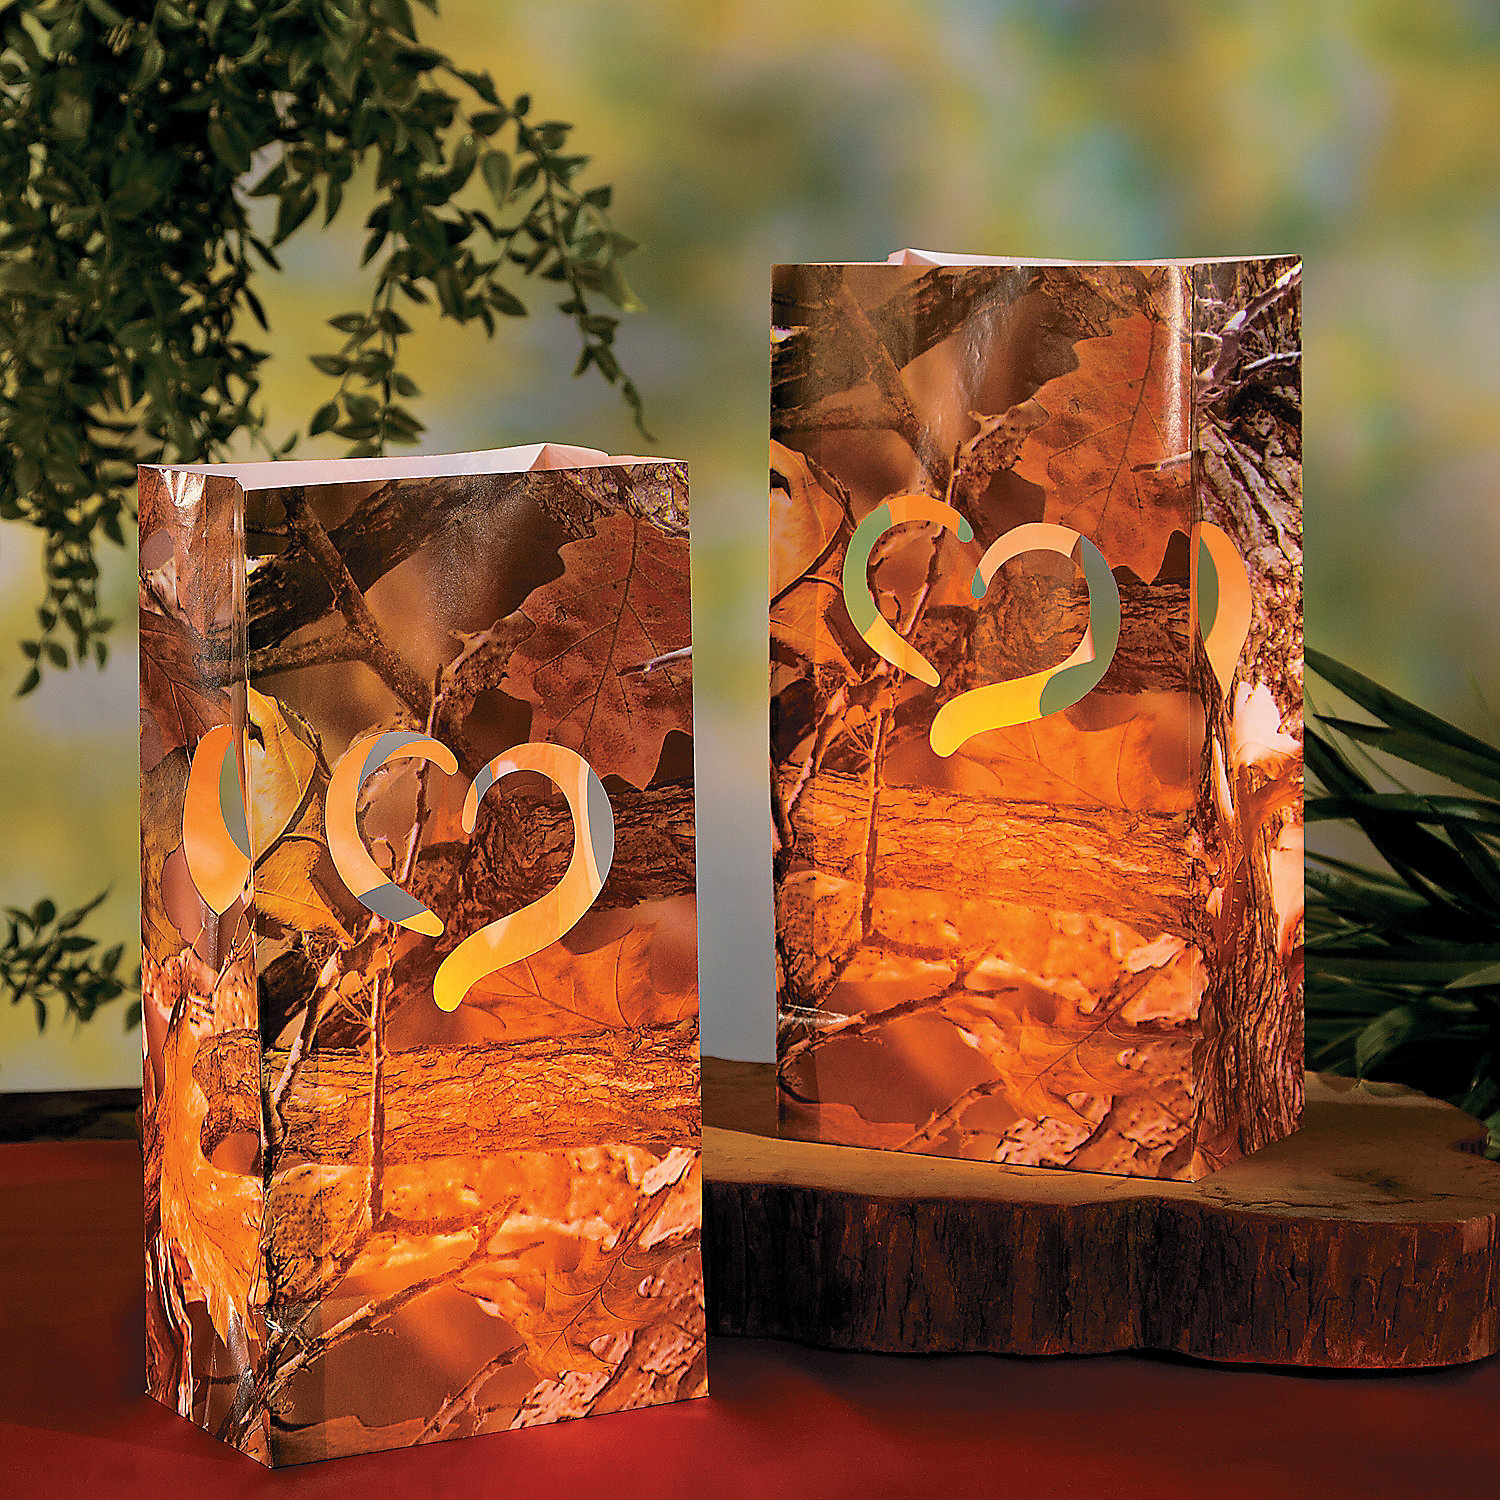 Camo Outdoor Wedding Ideas: Camouflage Wedding Luminary Bags, Party Lights & Special